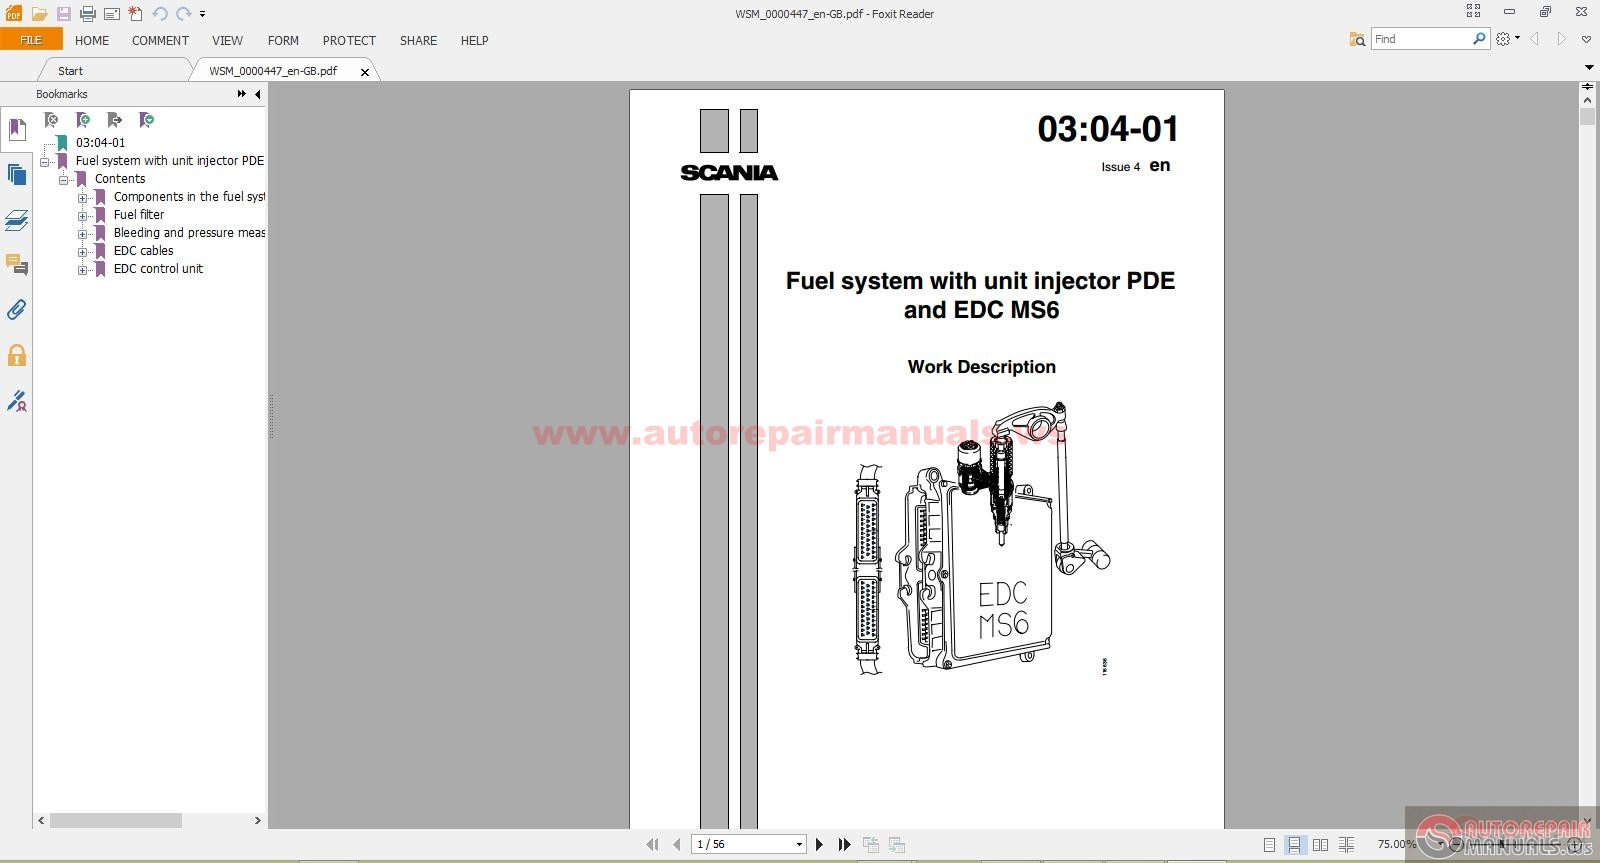 161040057246 additionally 321653142658 in addition Scania Truck Workshop Manual Technical as well Watch as well Watch. on dump truck wiring diagram